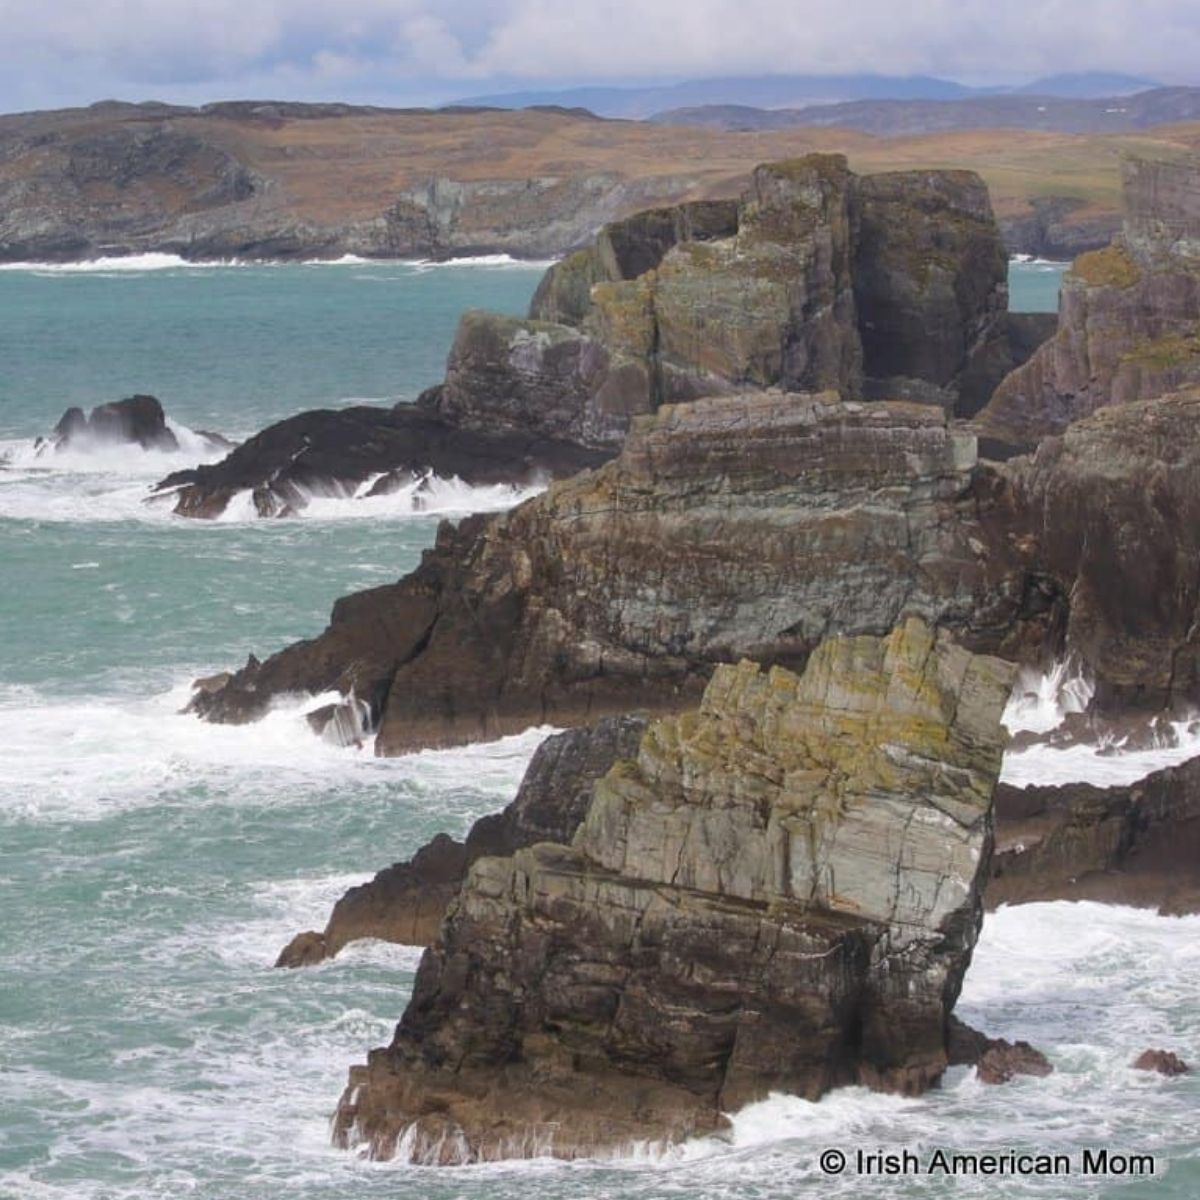 Three large rock formations jutting into the ocean in Ireland